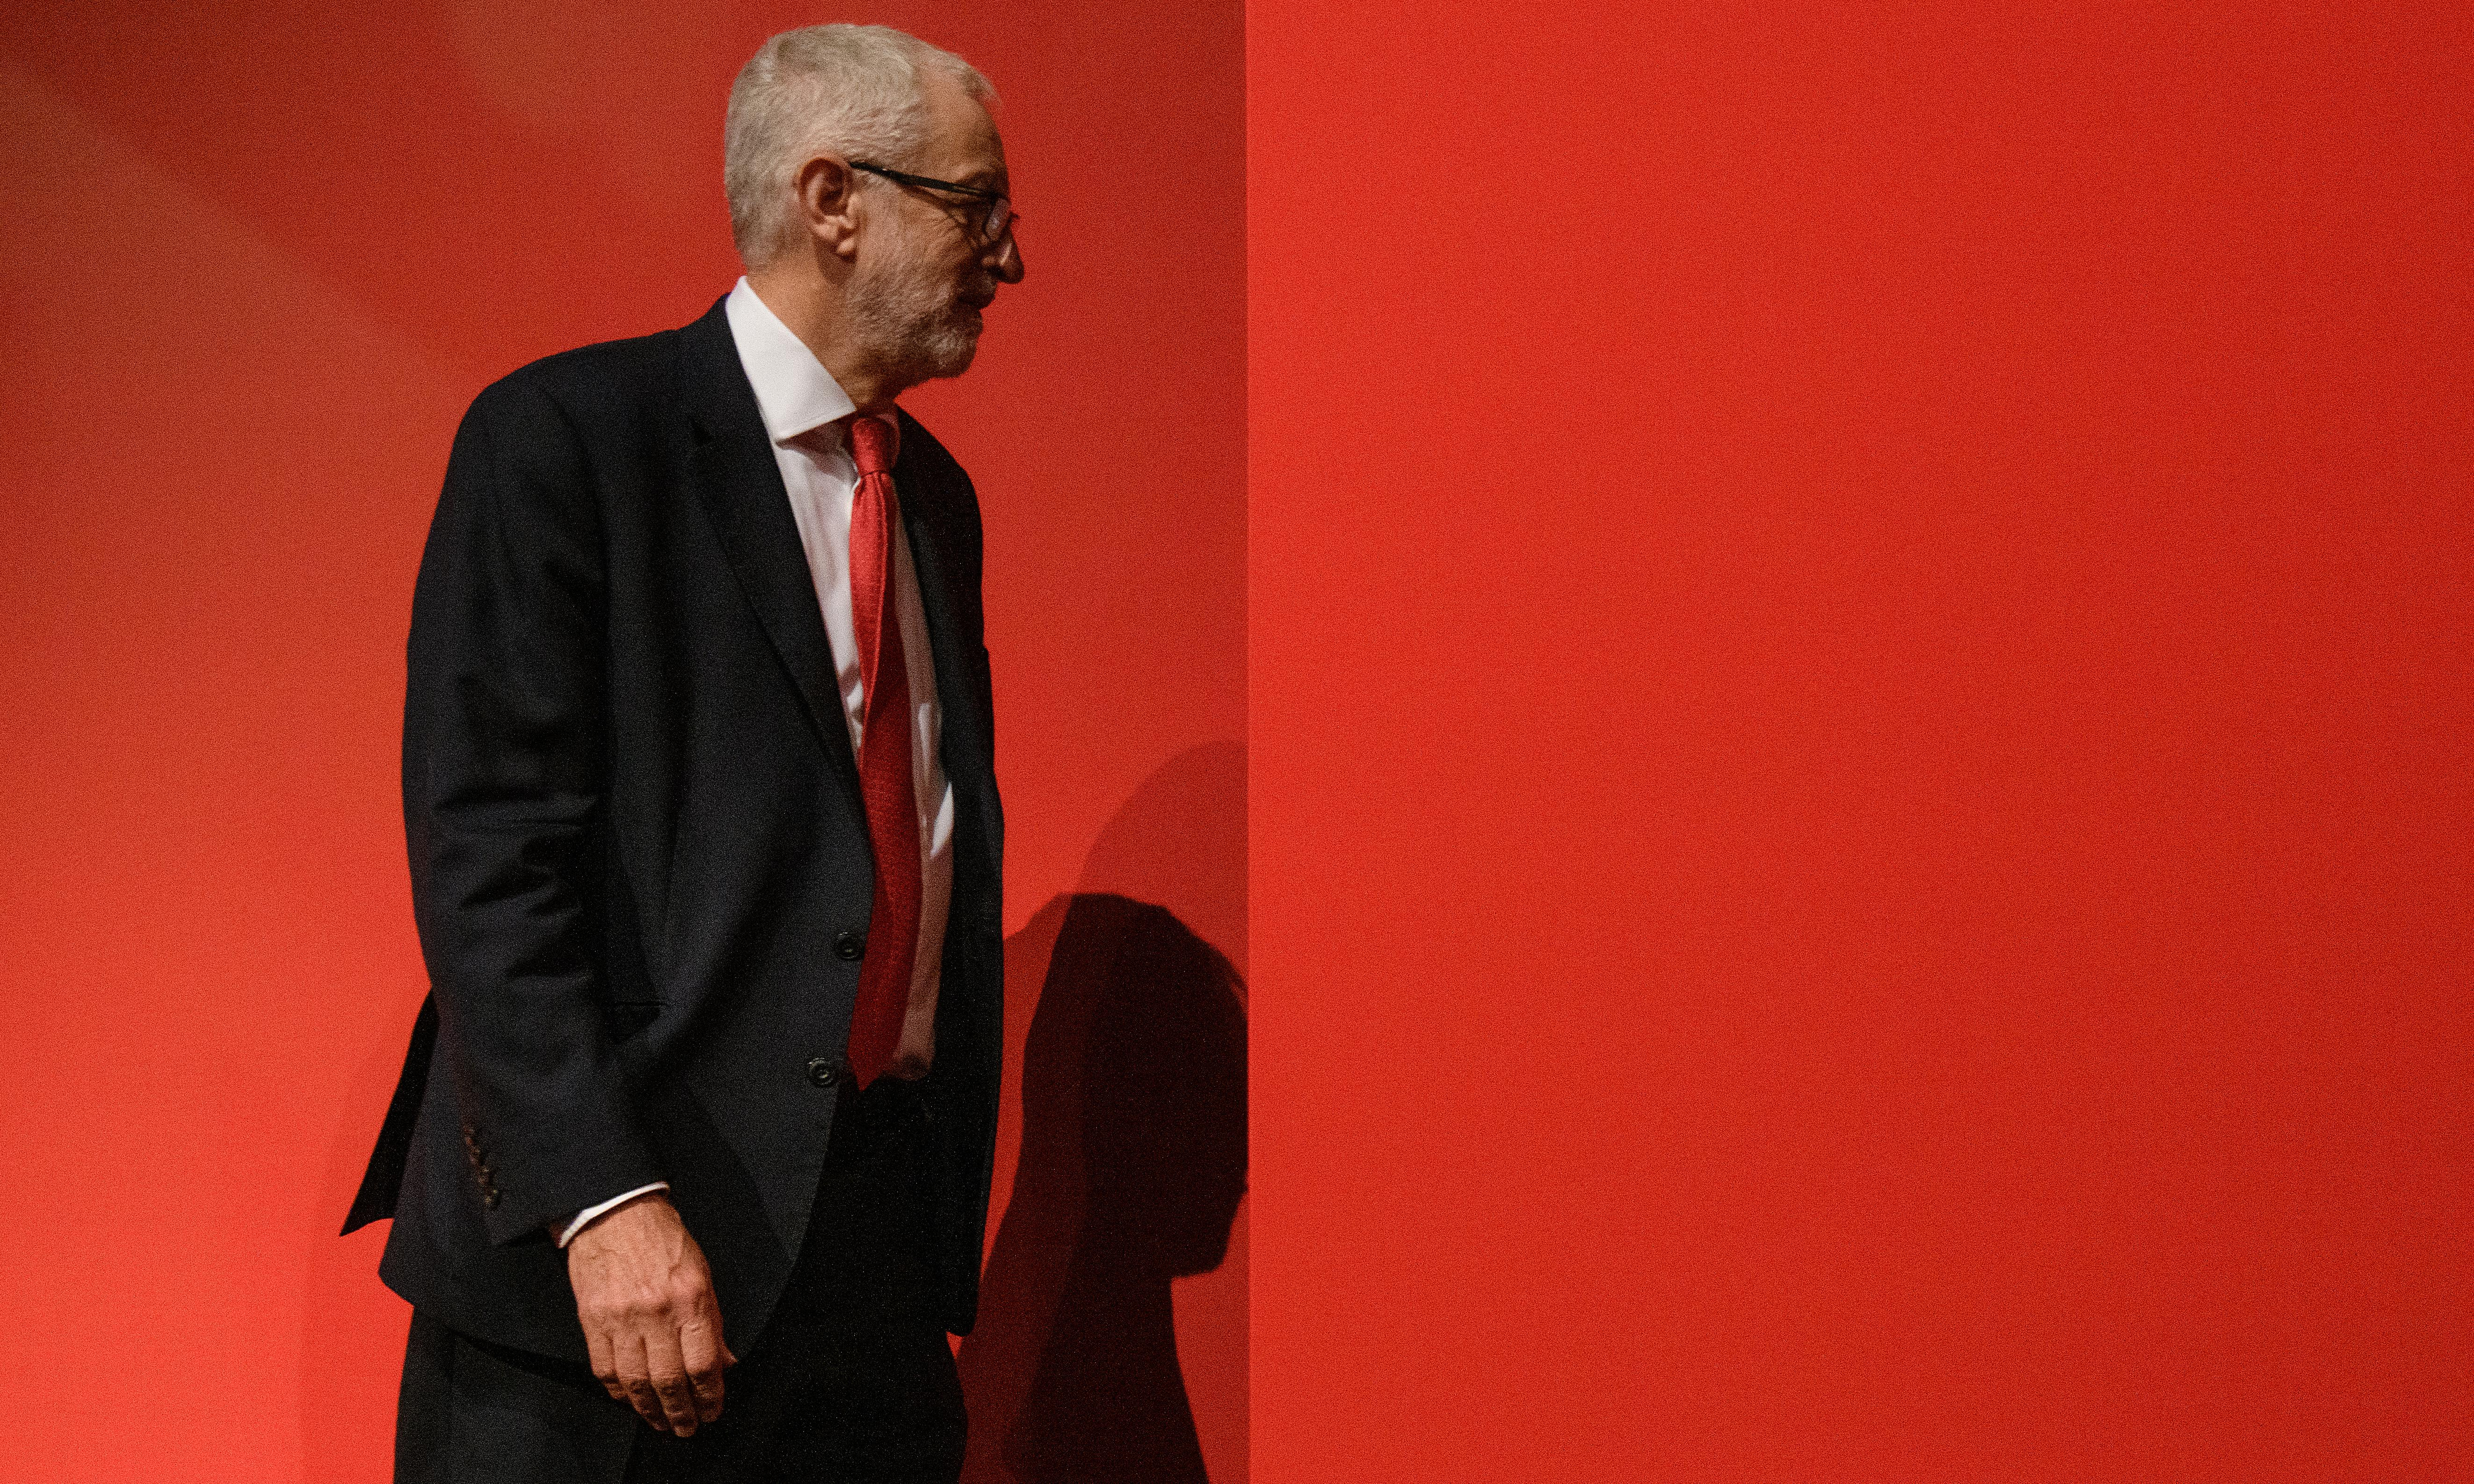 Forget Brexit. The new battle is over Jeremy Corbyn's successor